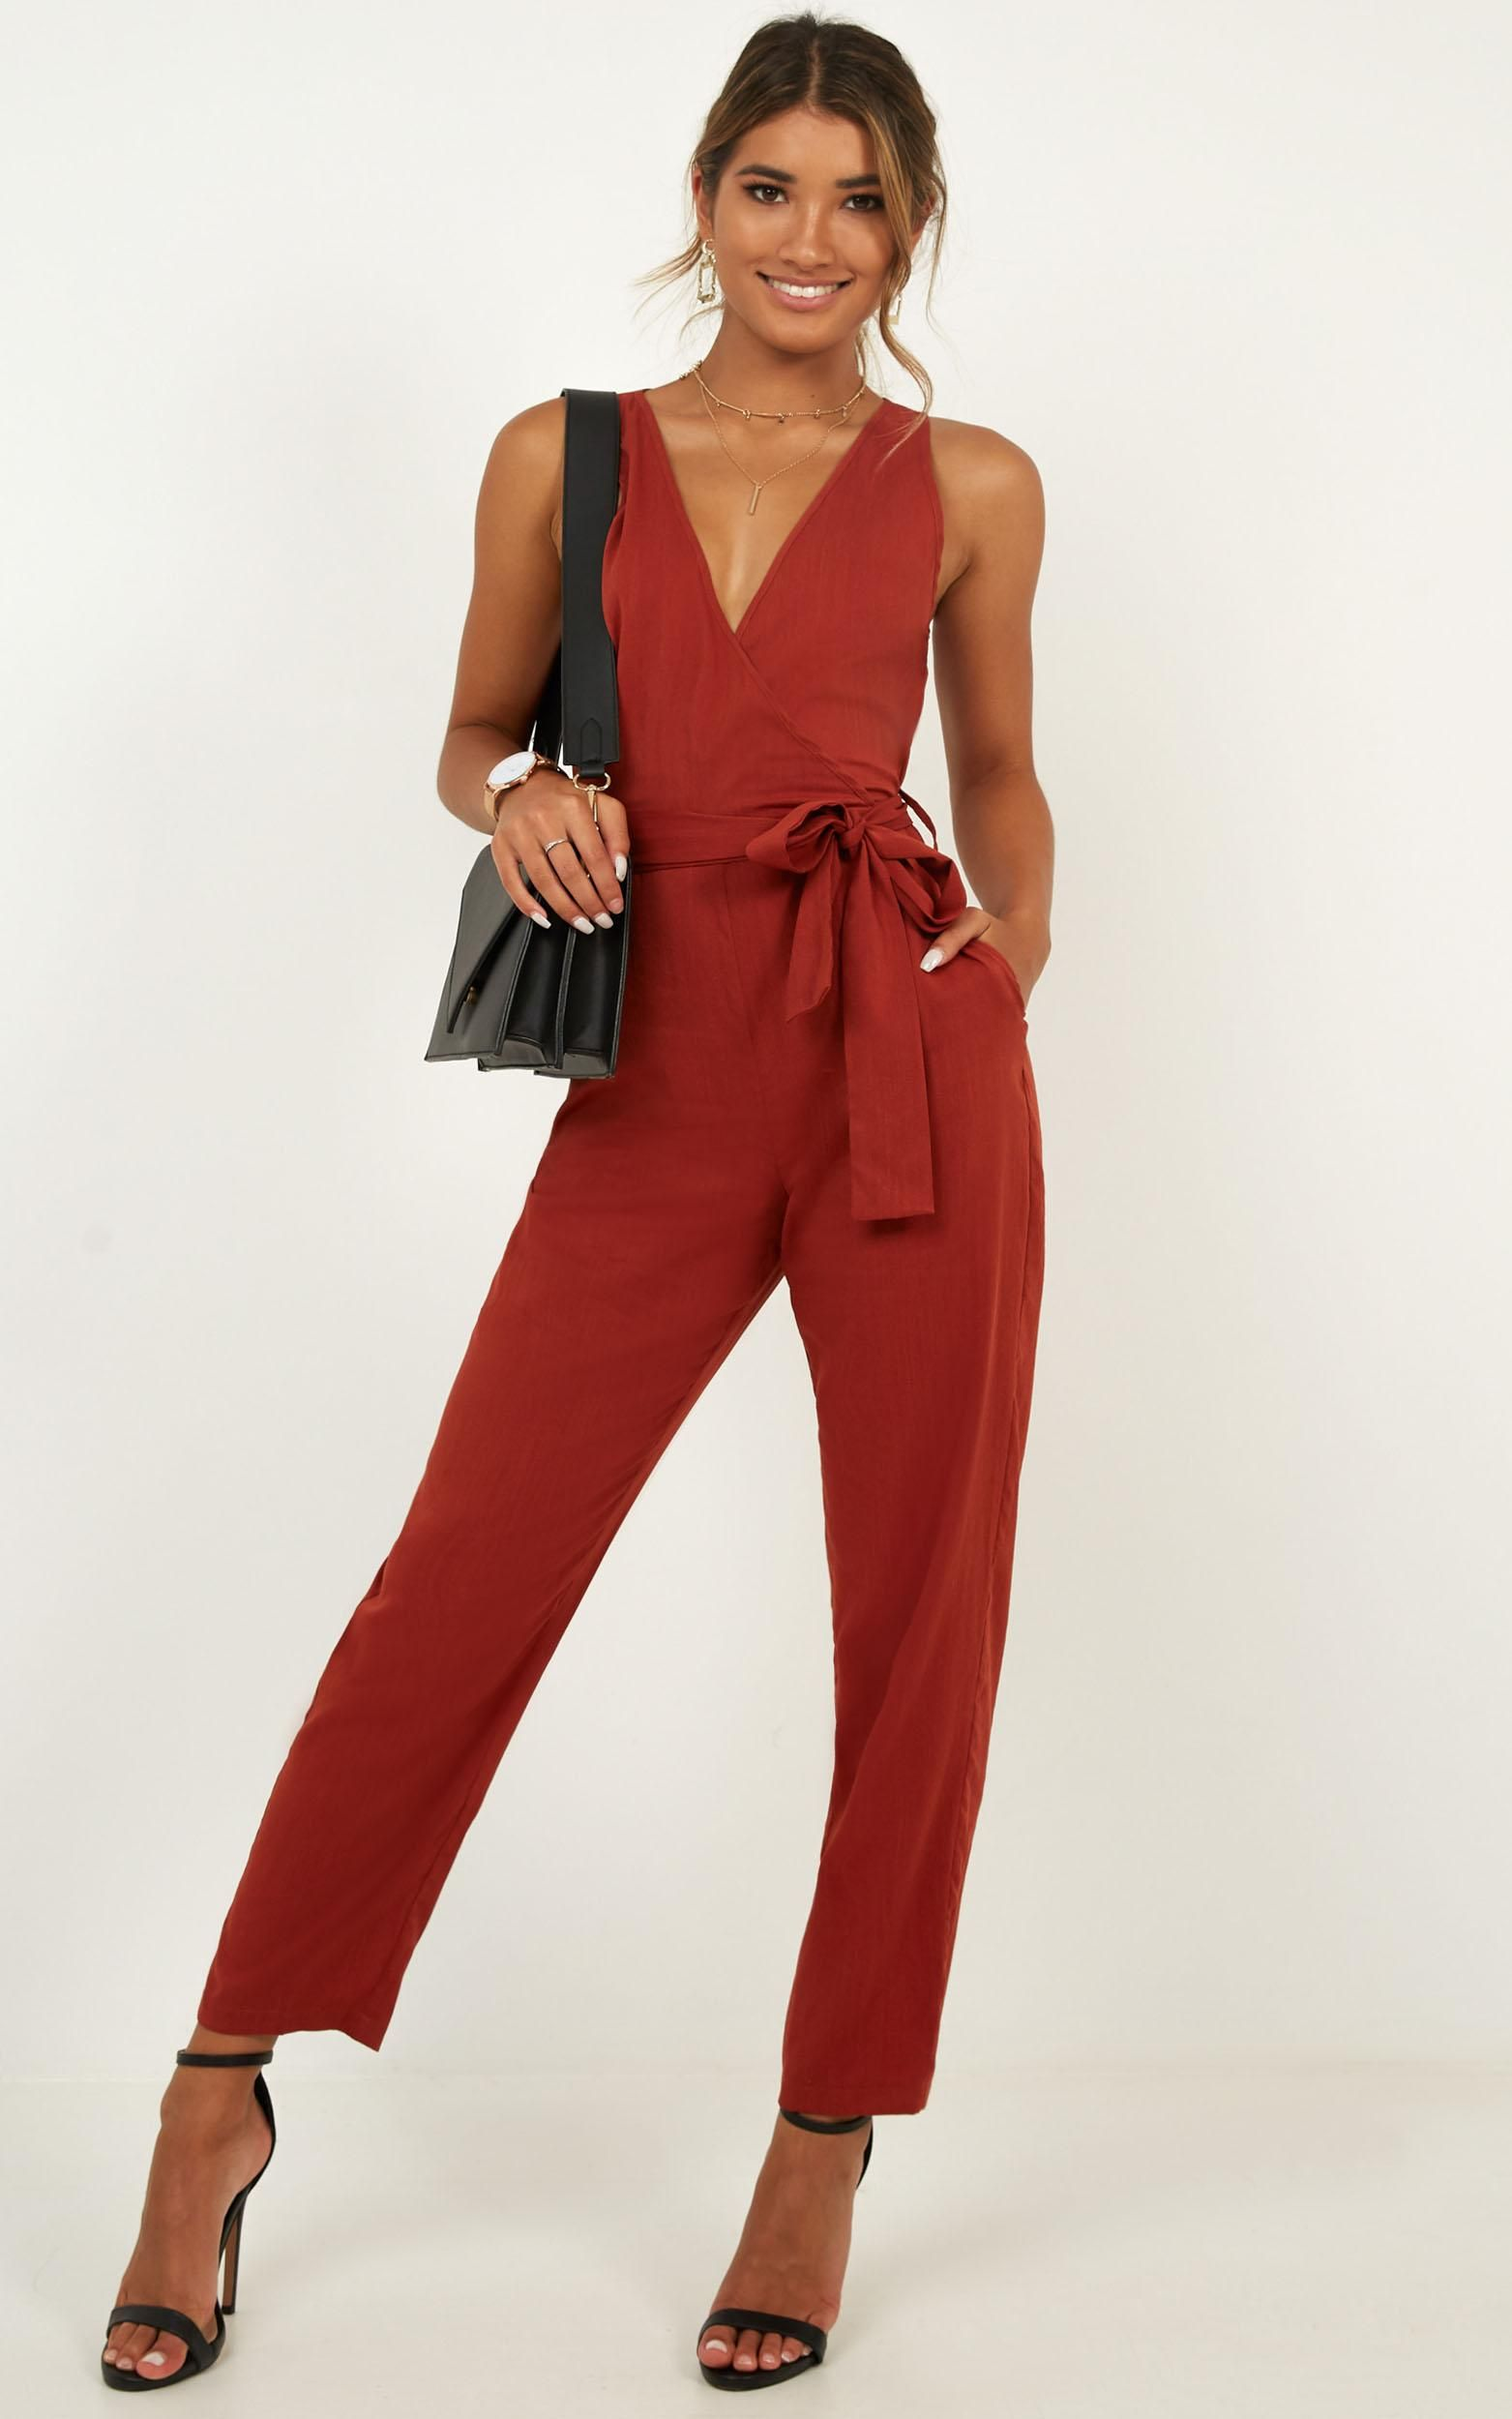 469c57a7940 Leadership Jumpsuit In Rust linen look Produced By SHOWPO